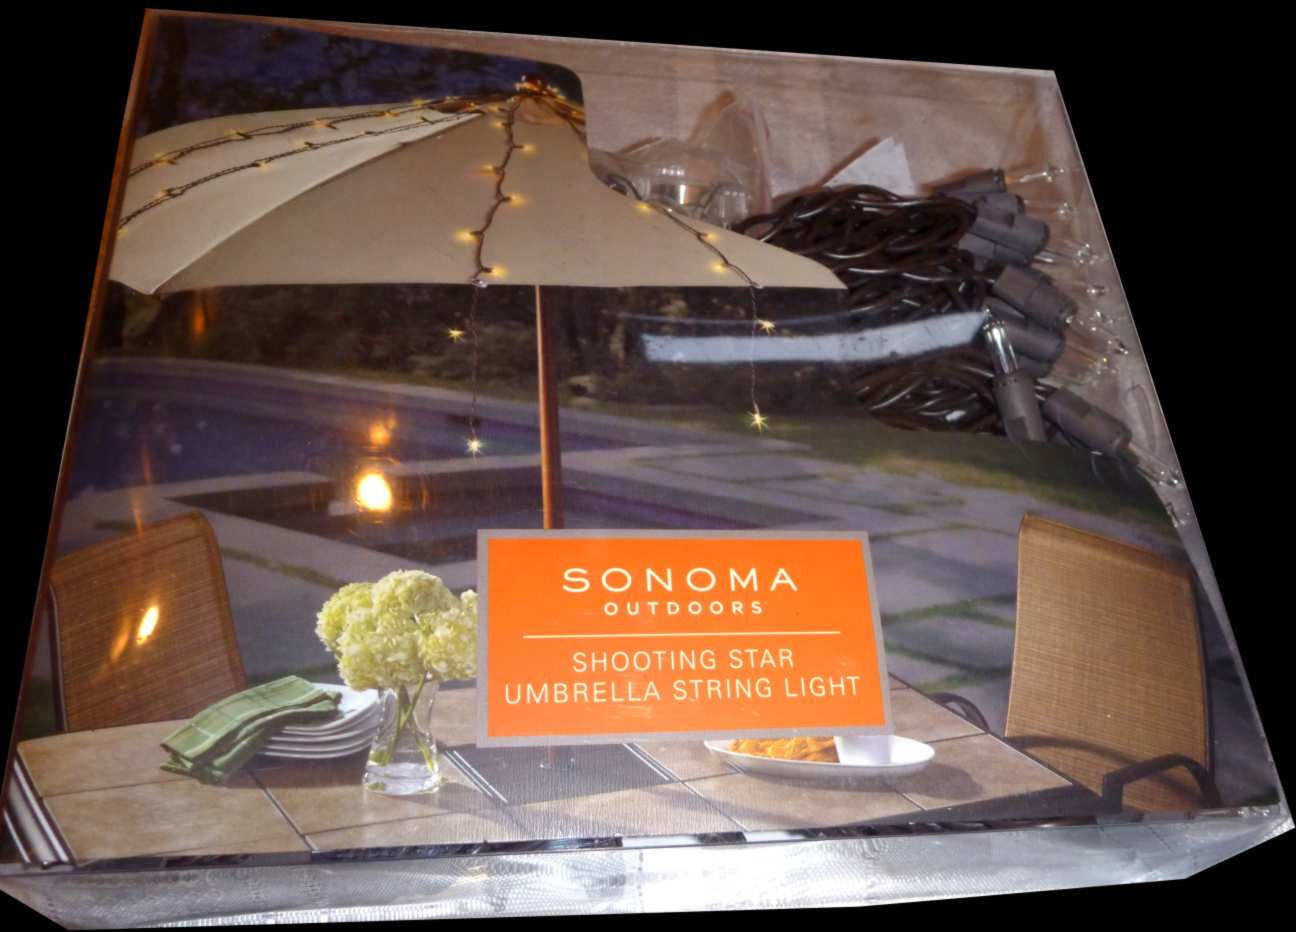 Umbrella String Lights-$60 SONOMA Outdoor Shooting Star Dorm Lighting-Bed Canopy image 7